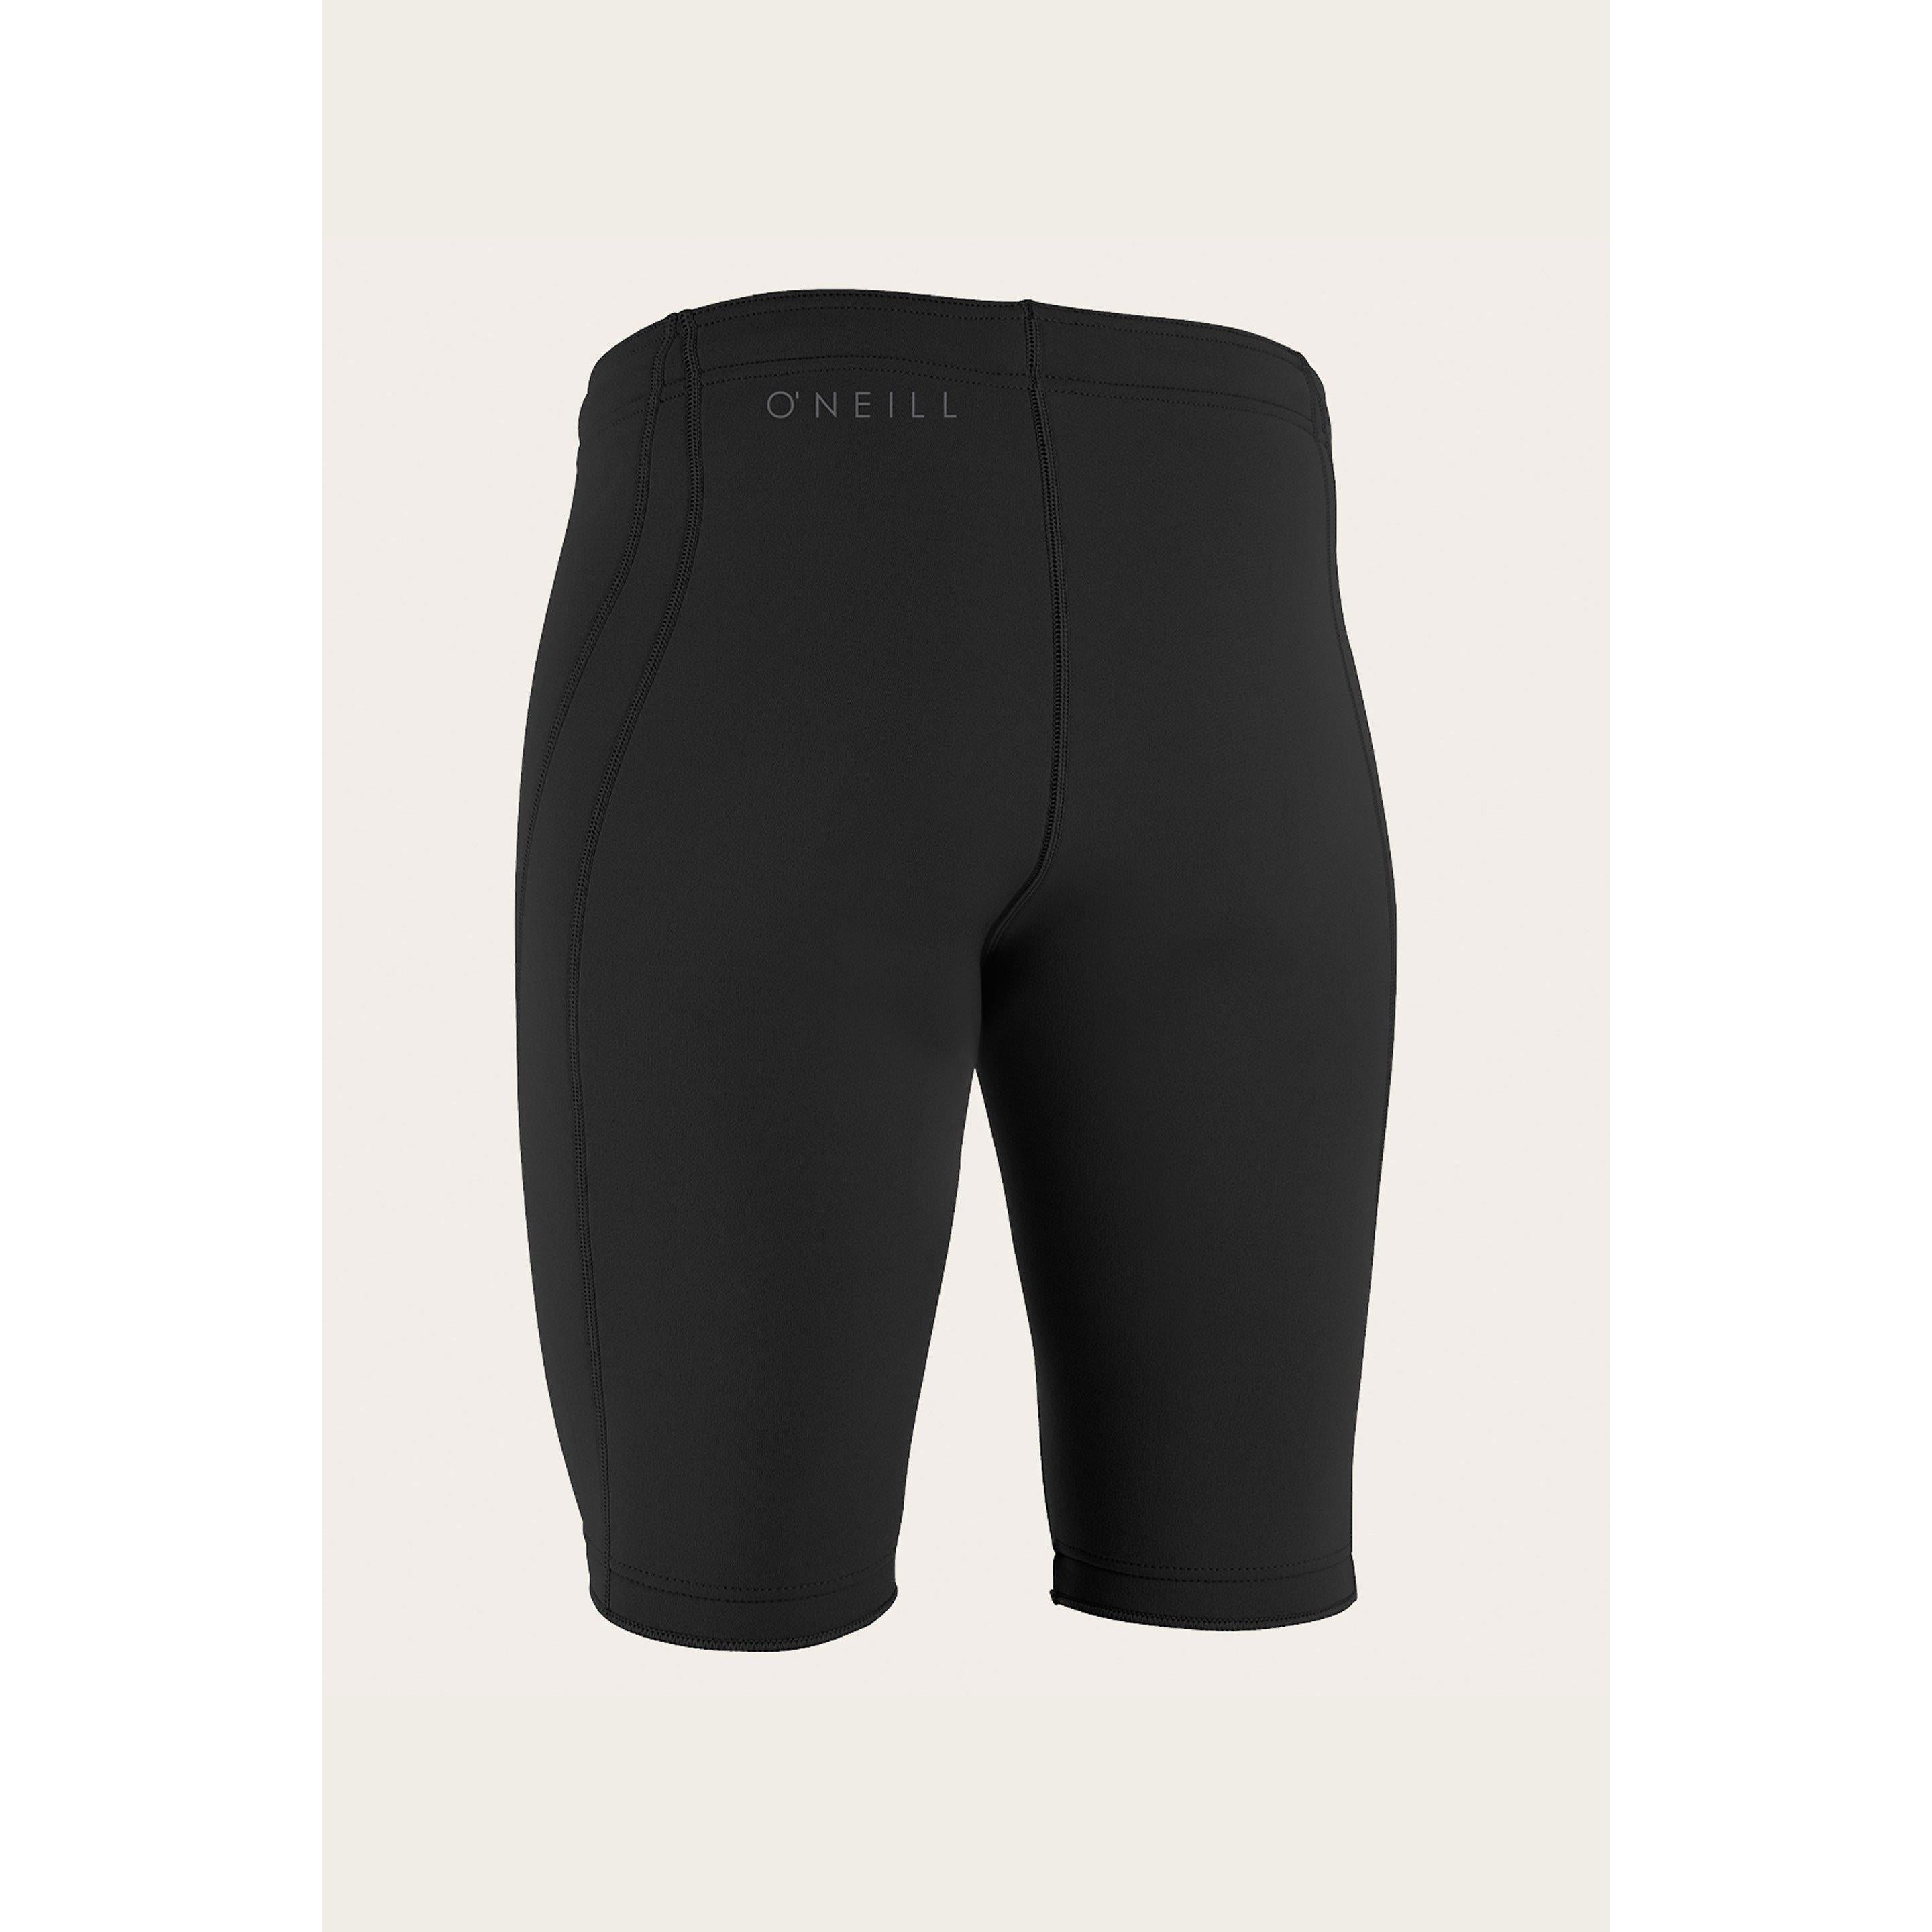 O'NEILL REACTOR II 1.5MM SHORTS-Wetsuits-Big Winds